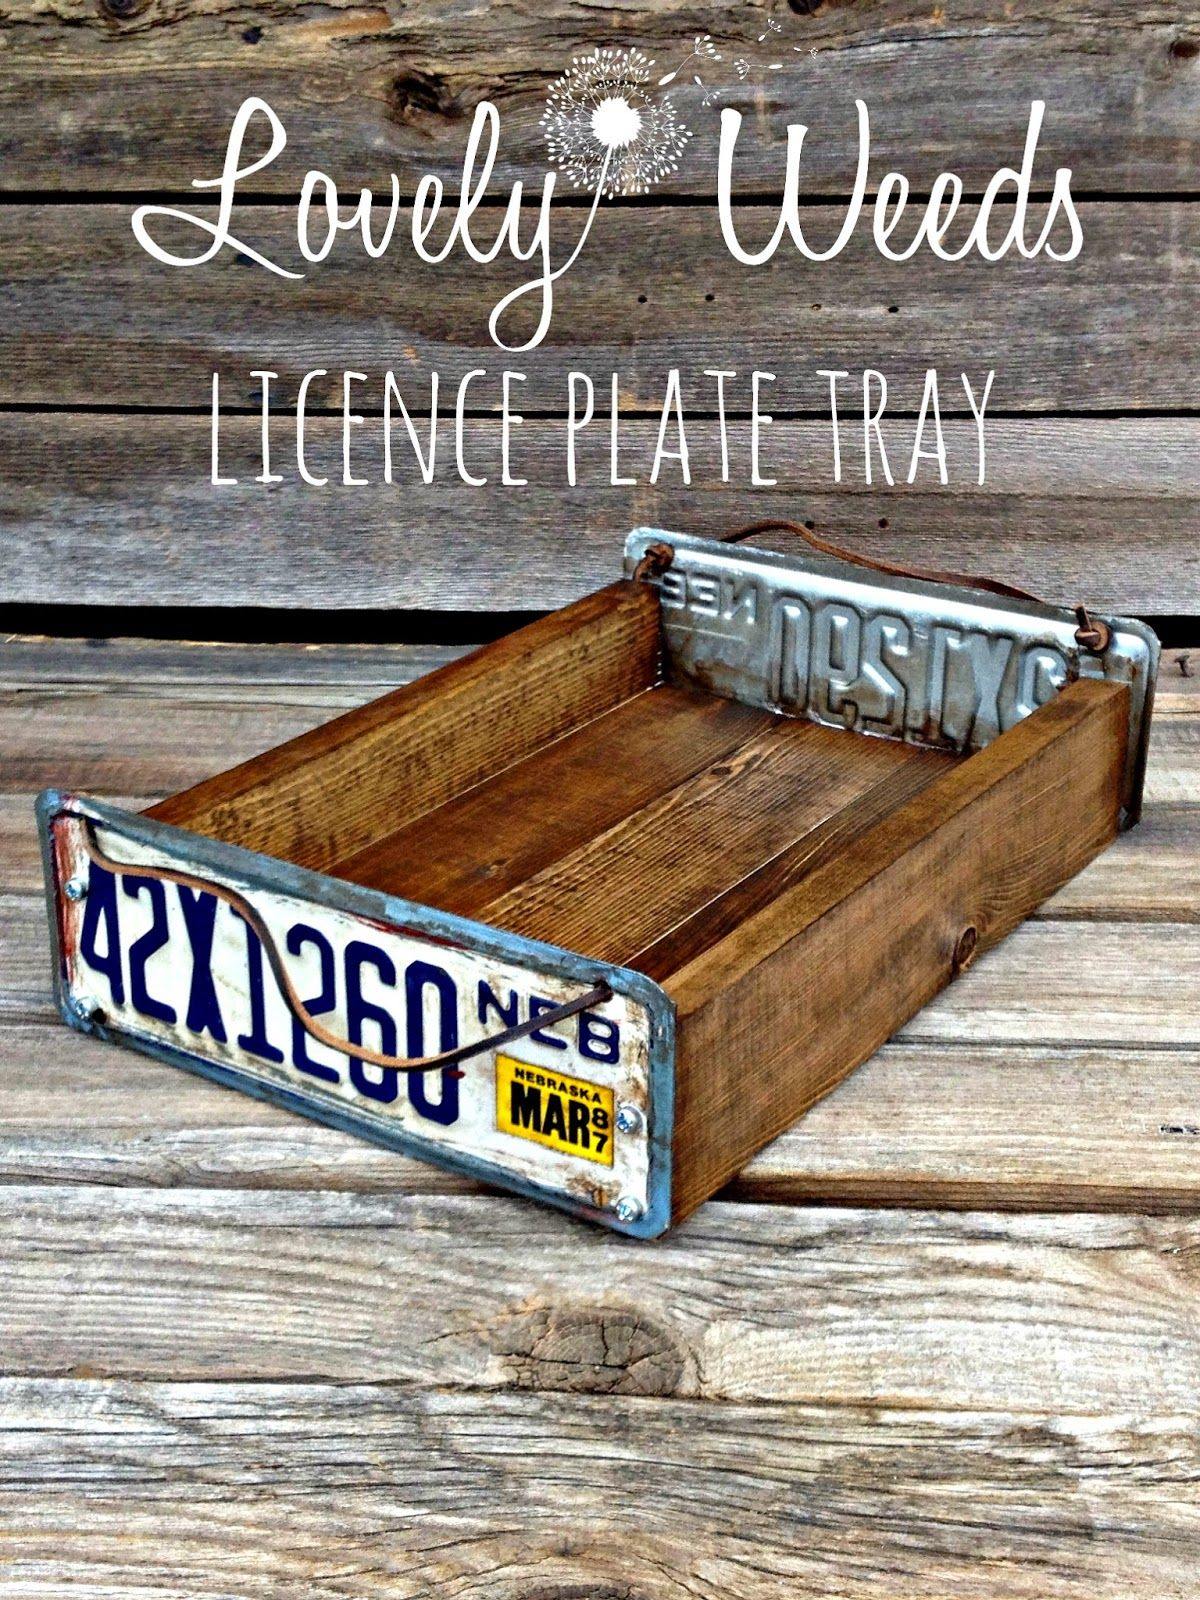 Salvaged License Plate Tray   Lovely Weeds